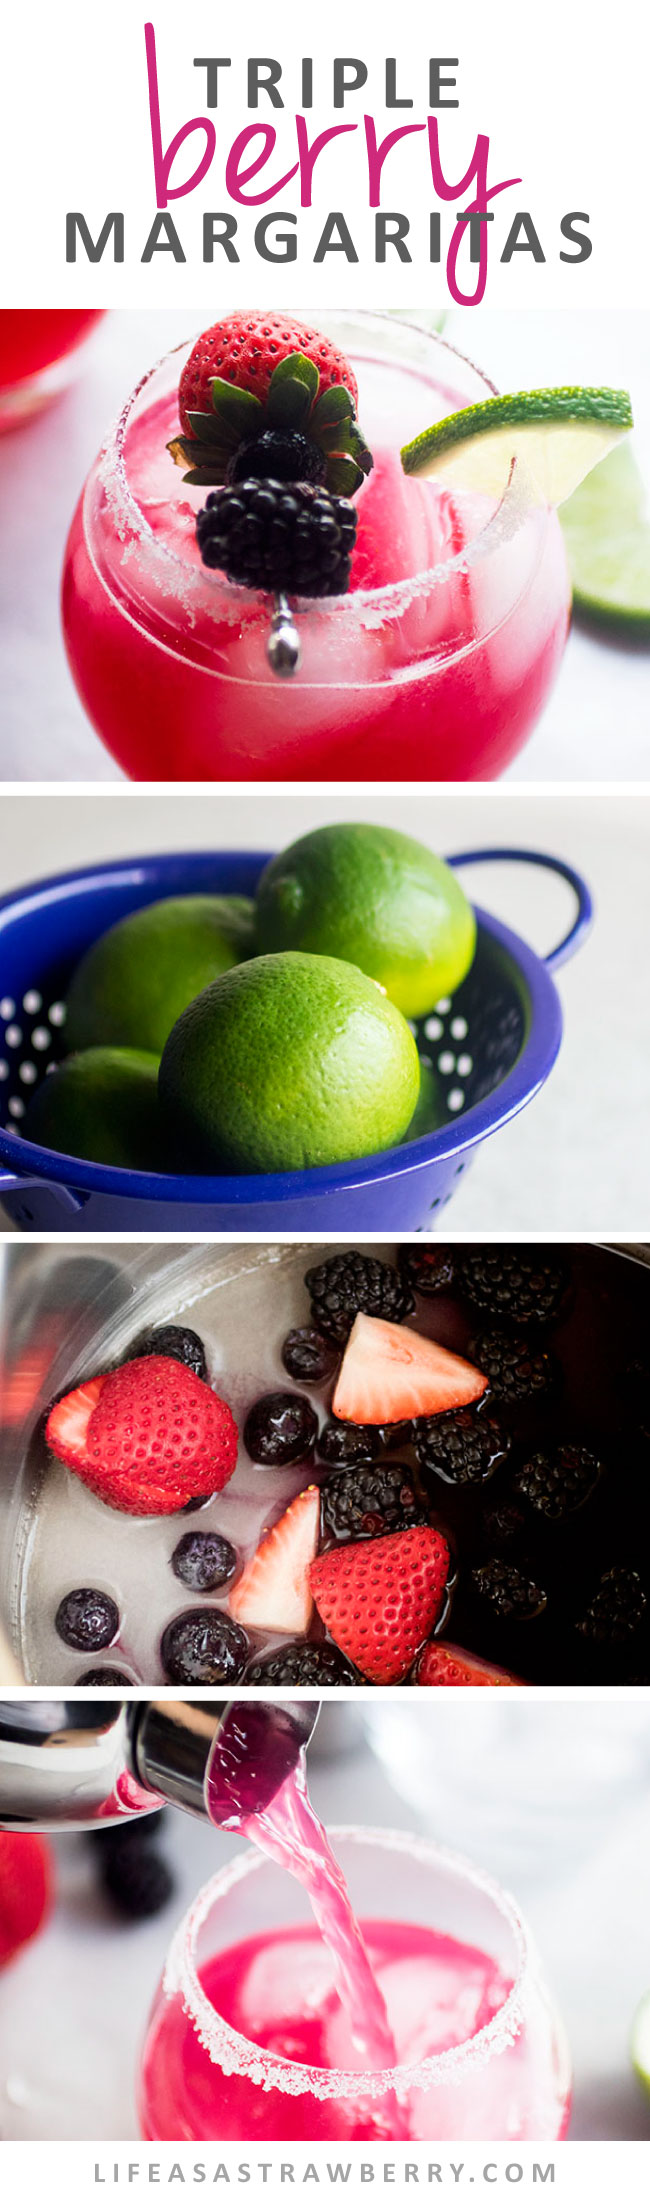 Triple Berry Margaritas - This easy margaritas recipe uses fresh blackberries, strawberries, and blueberries for a sweet, colorful twist on a classic margarita cocktail. No margarita mix required! Make it on the rocks or frozen and blended, and easy to make in a pitcher for a crowd. Vegetarian, Vegan.